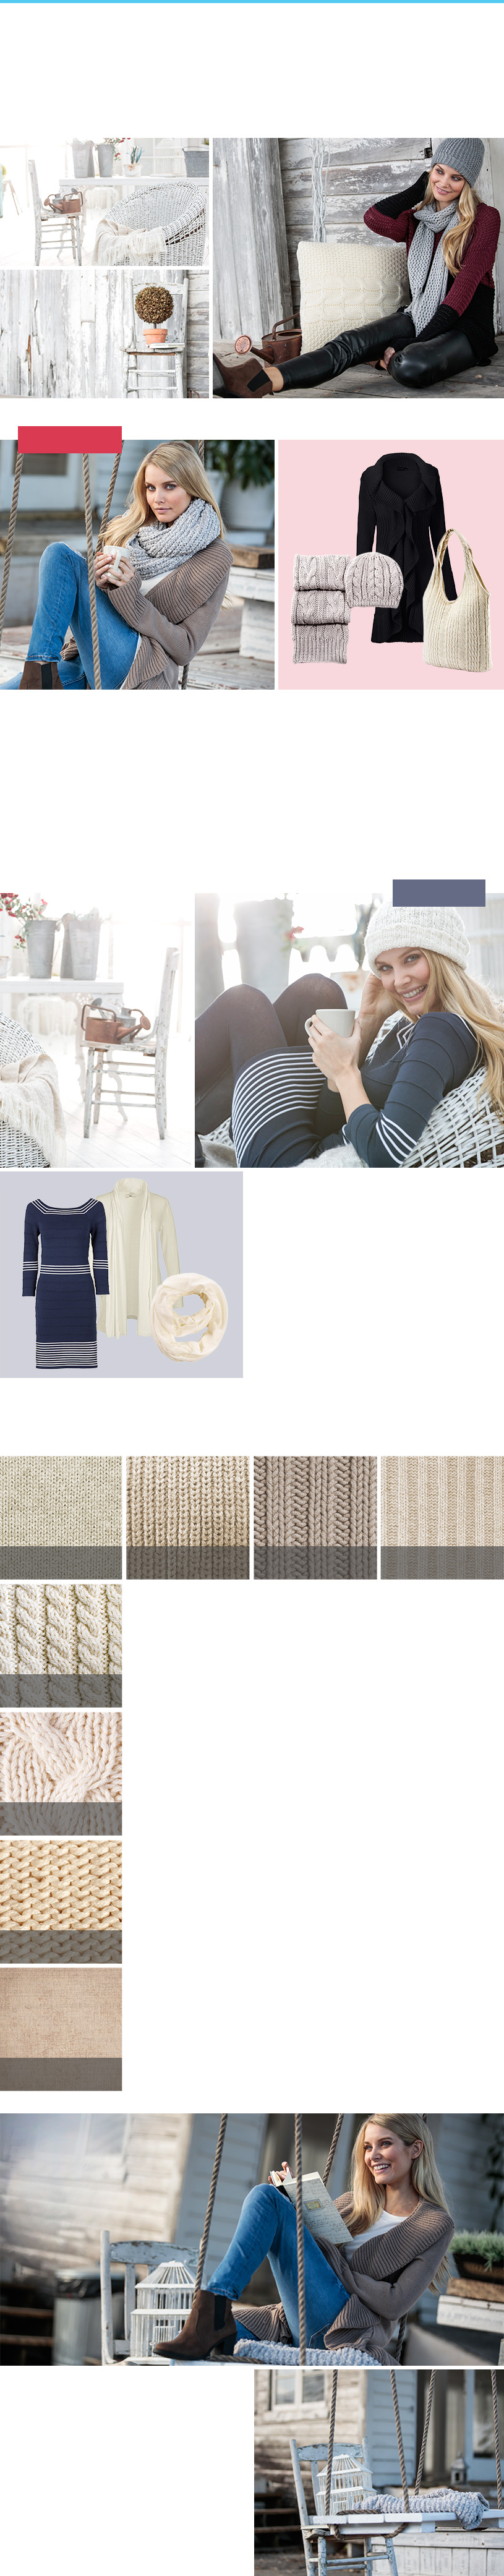 teaser/bpat/freies_layout/AT_RK_STIL_Strickguide_4715.jpg